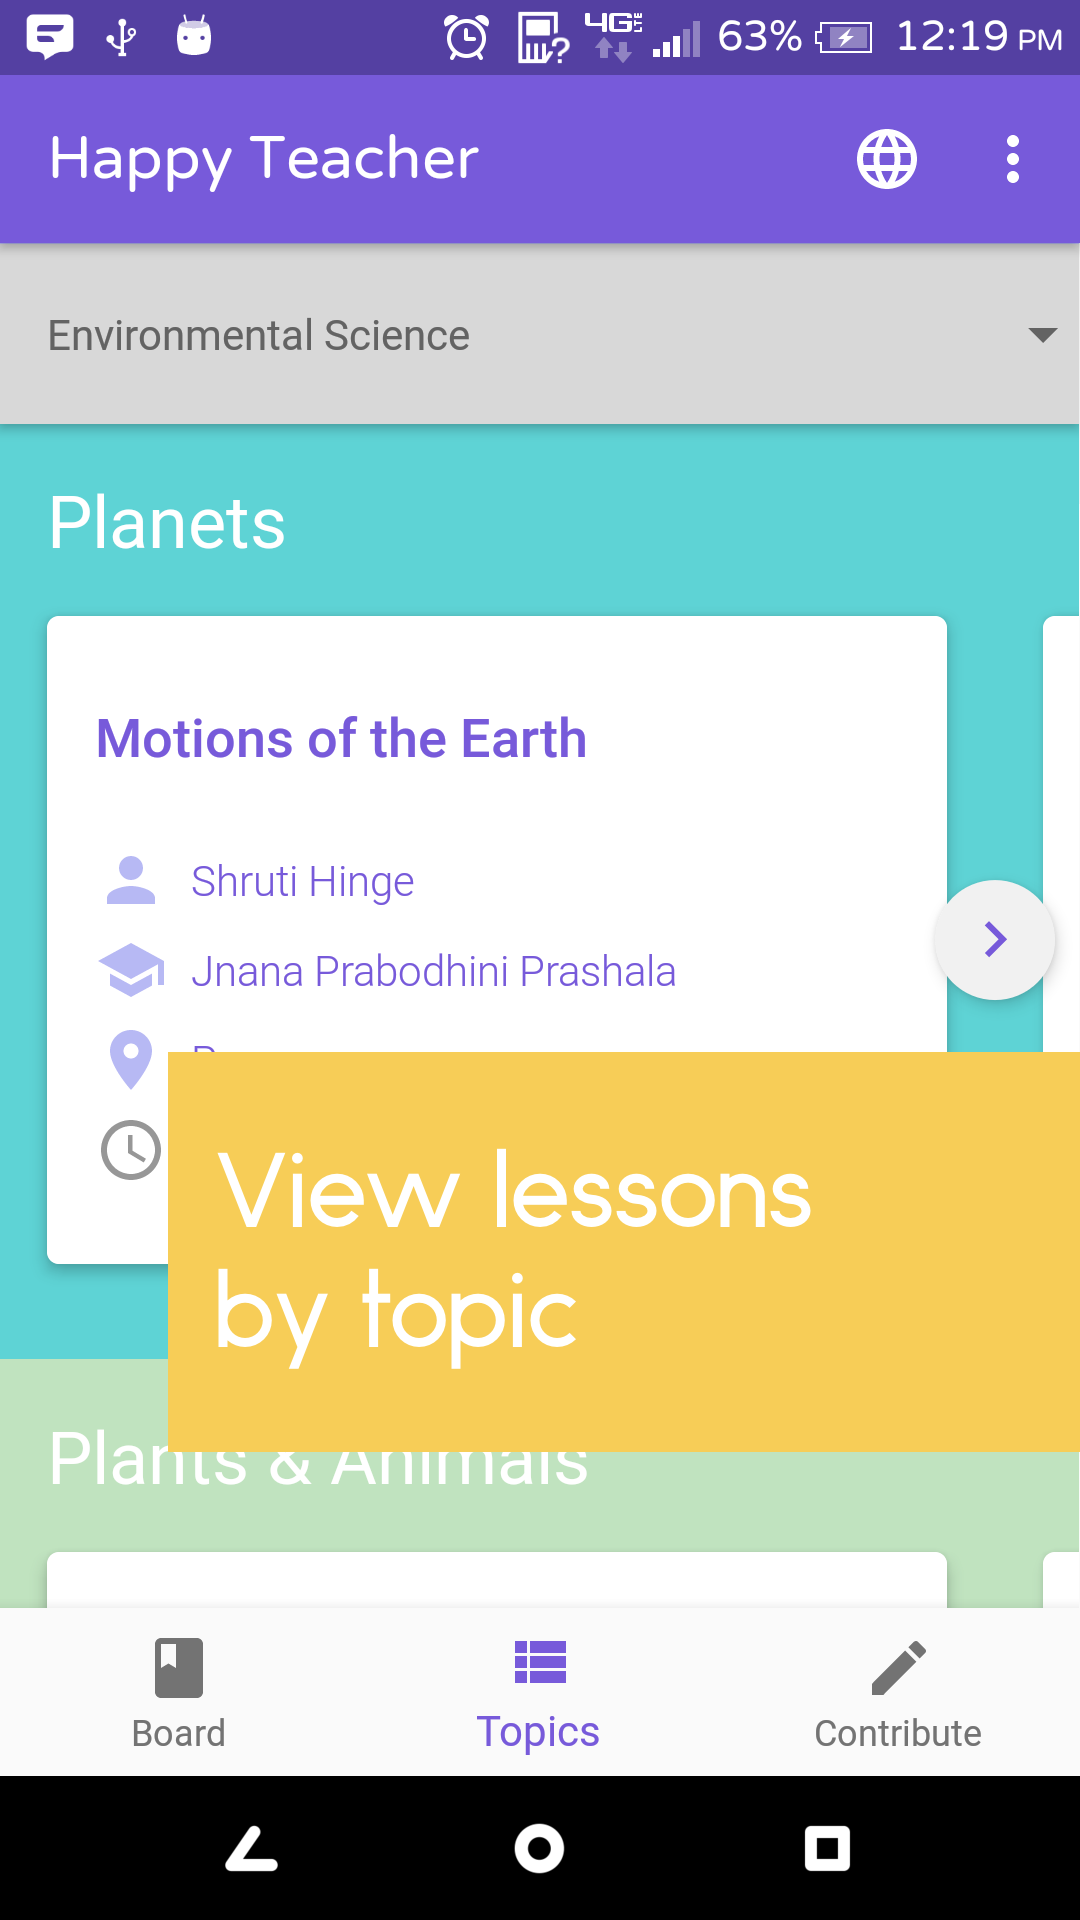 View lesson plans by topic